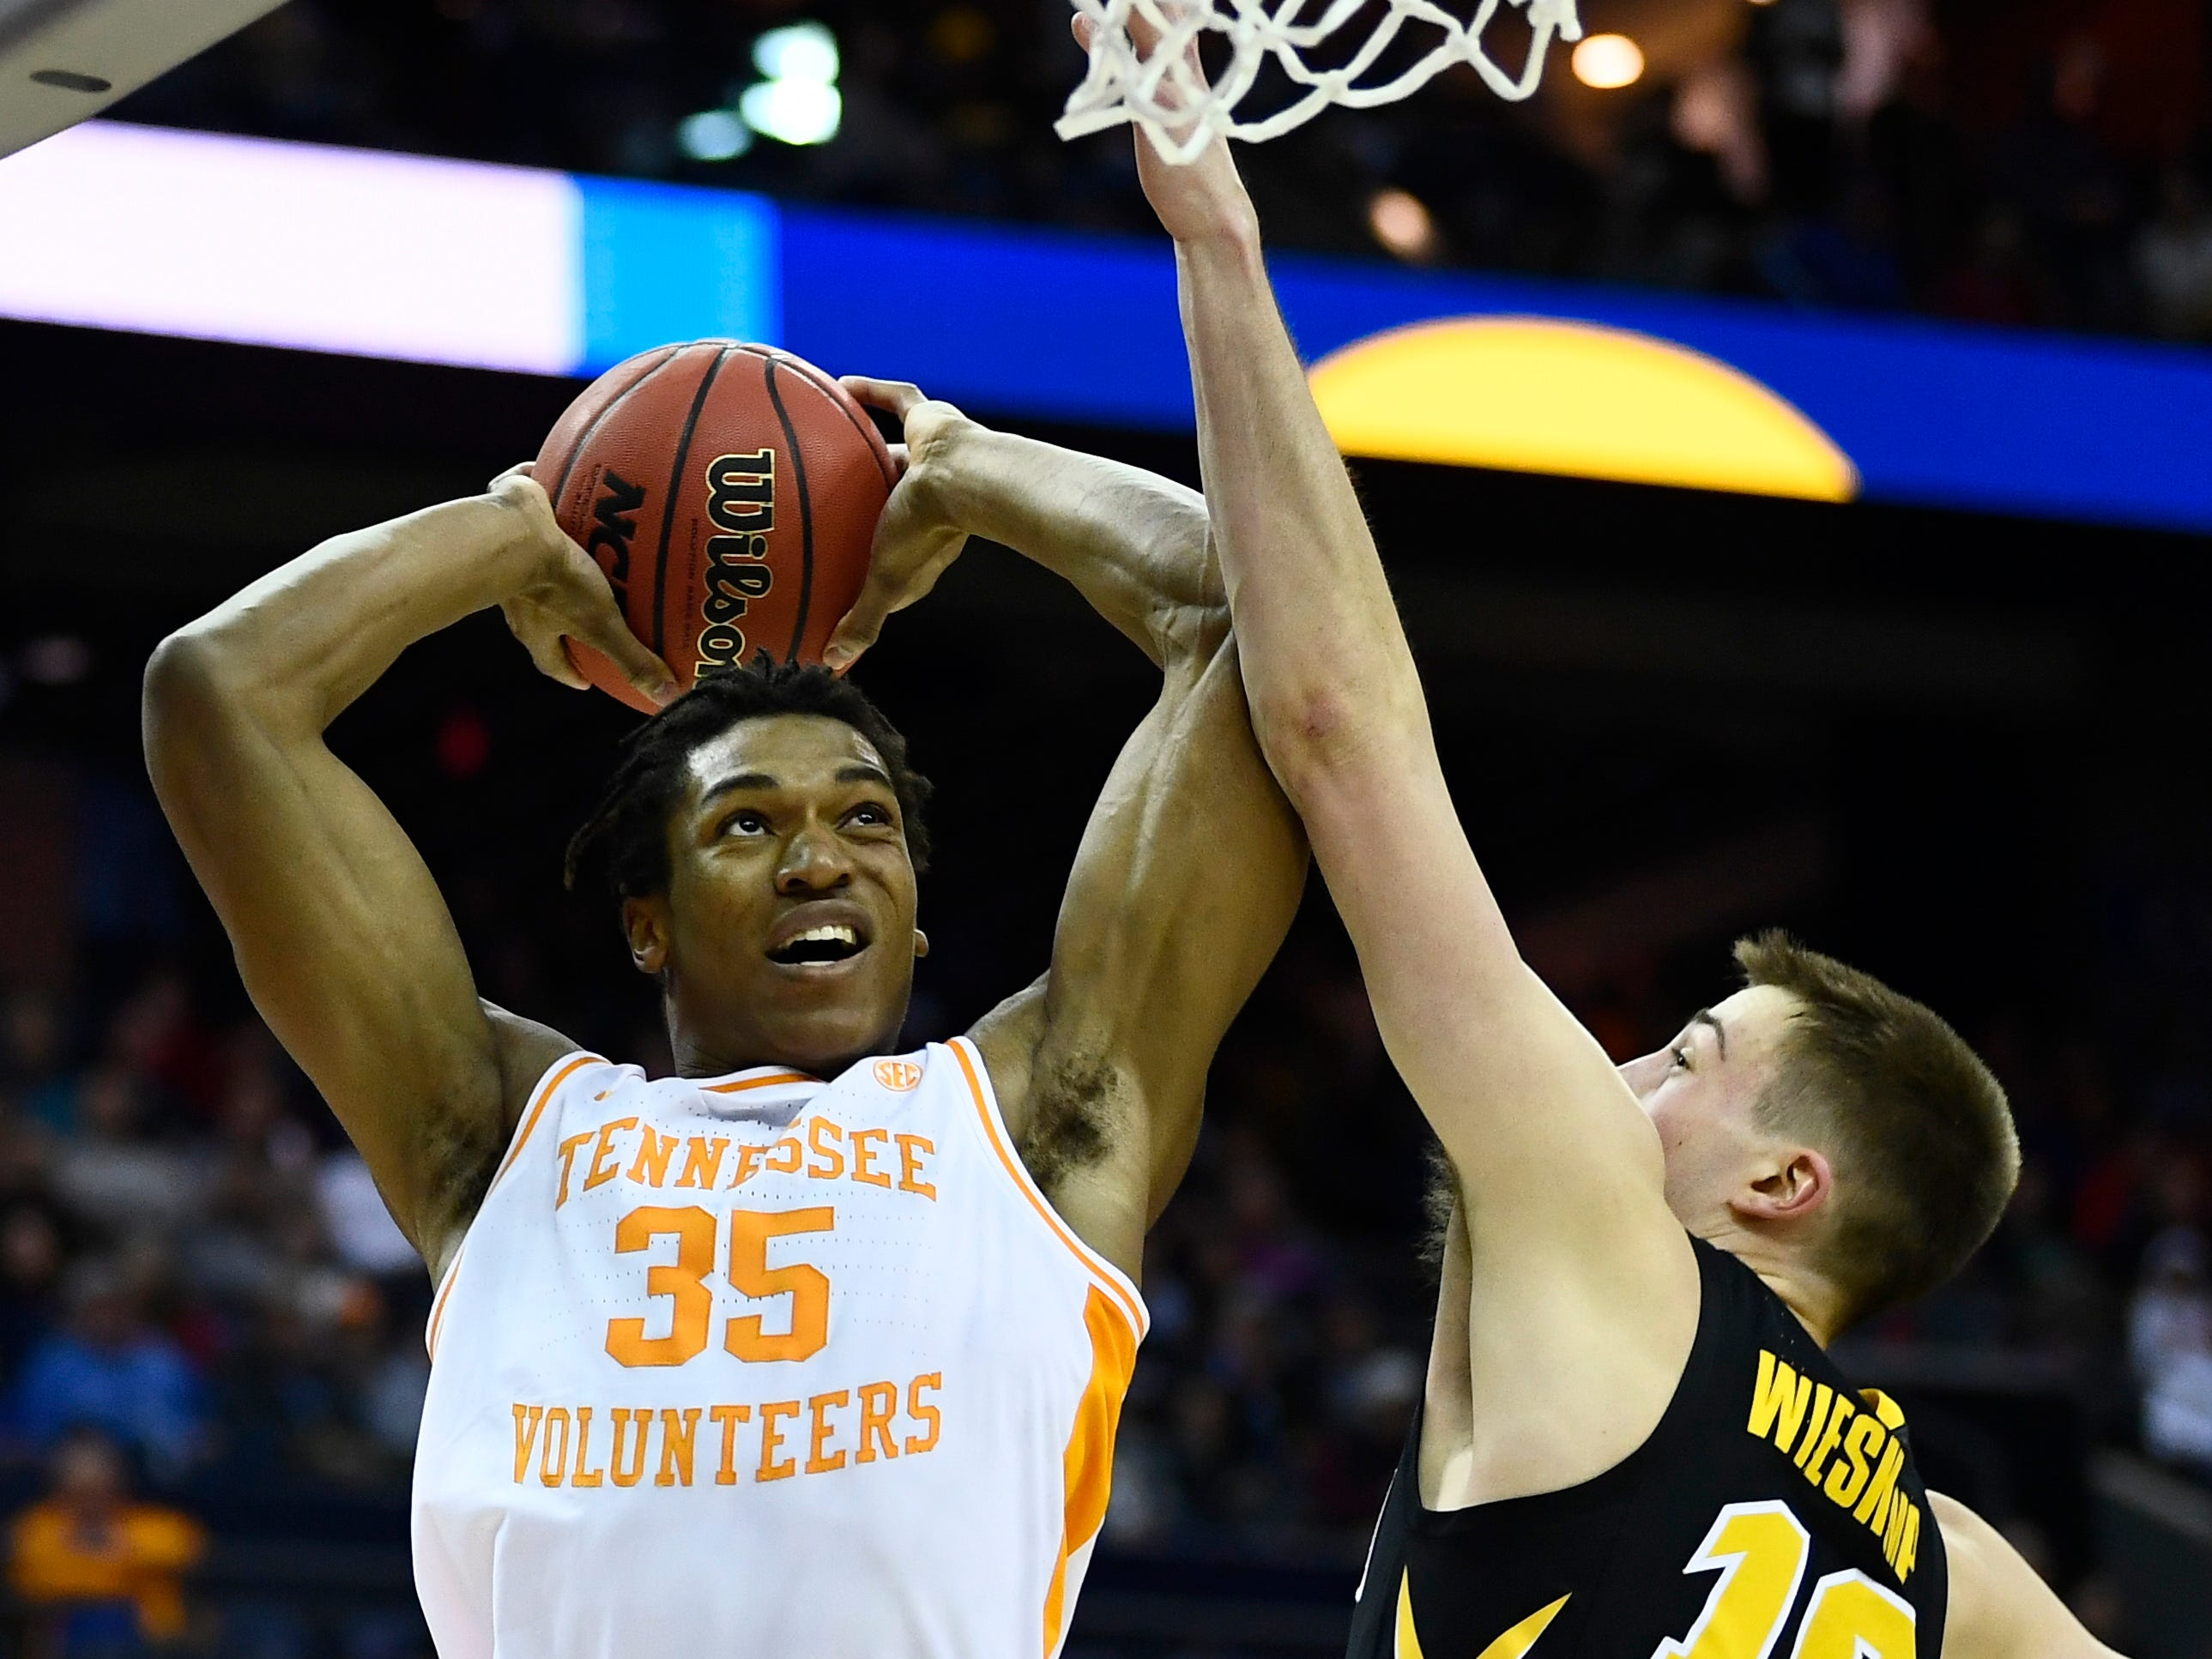 Tennessee guard/forward Yves Pons (35) takes a shot over Iowa guard Joe Wieskamp (10) during the first half of the game in the second round of the NCAA Tournament at Nationwide Arena in Columbus, Ohio, Sunday, March 24, 2019.